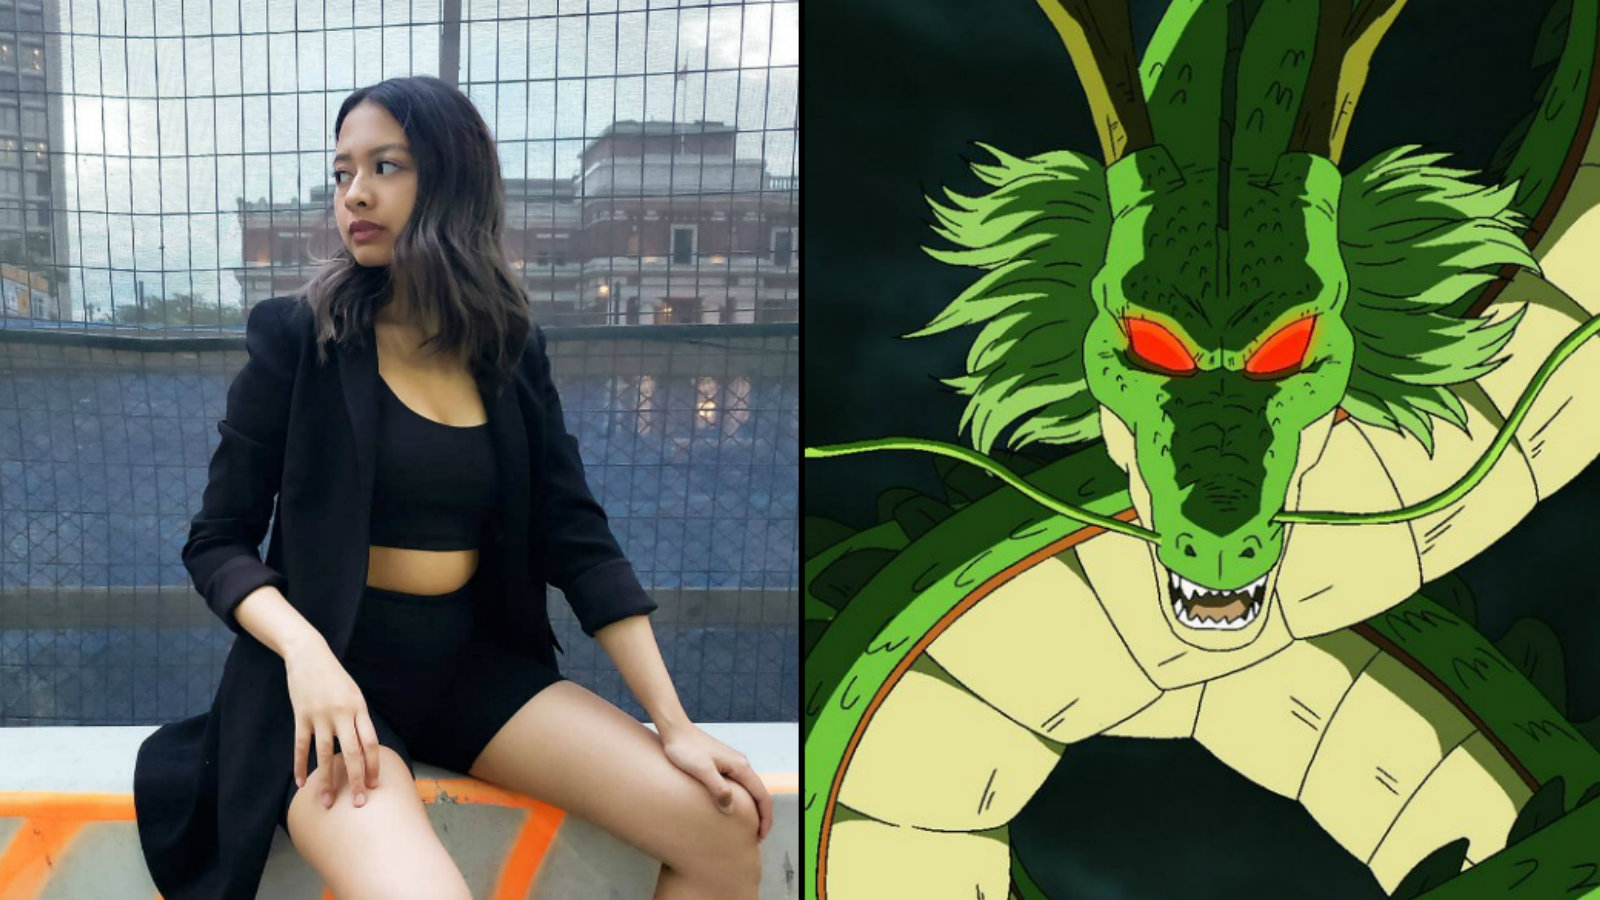 Twitch streamer IssaGrill and Dragon Ball Z's Shenron